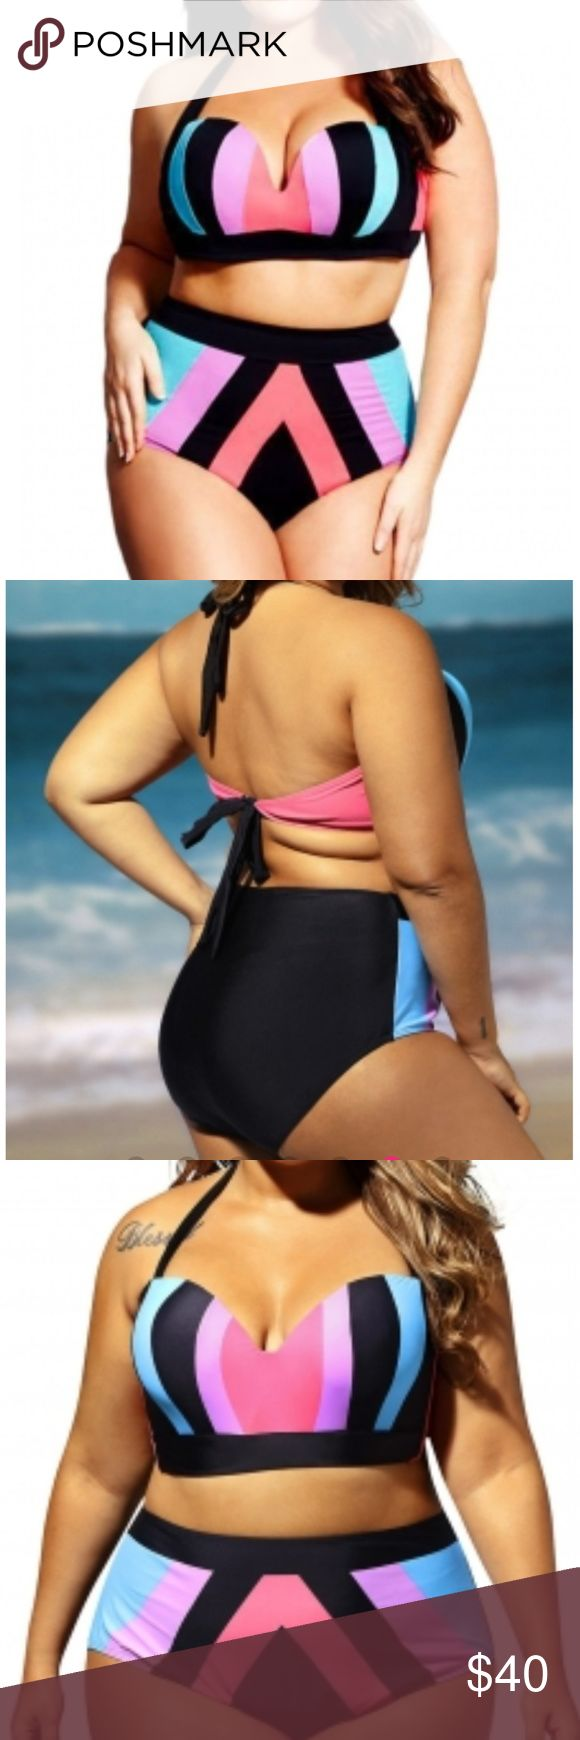 "Plus Size Strapped Color Splice Two Piece Swimwear Make waves this summer in our stunning Plus Size Strapped Color Splice Two Piece Swimwear. This sports luxe inspired design features a halter top, sexy plunge center front with soft contour lined cups that shape the bust, and a matching high-waisted bottom with wide elastic waistband. Carefully made of quality high-stretch fabric that smooths the body and slims the silhouette. Wired. High waist 20"" across Hips 23.5 across Medusa Swim Bikinis"